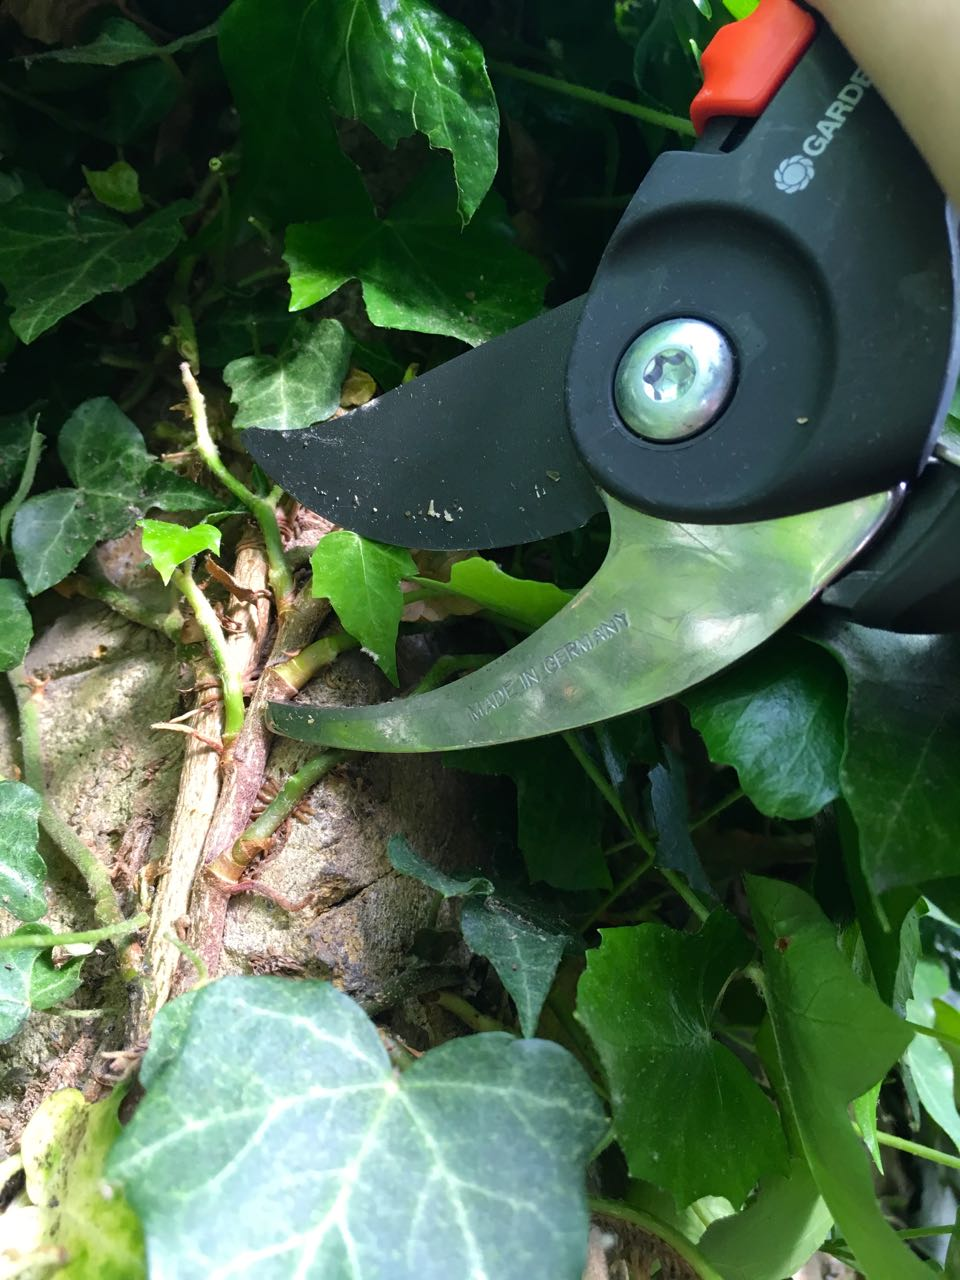 using the secateurs to accurately cut the ivy